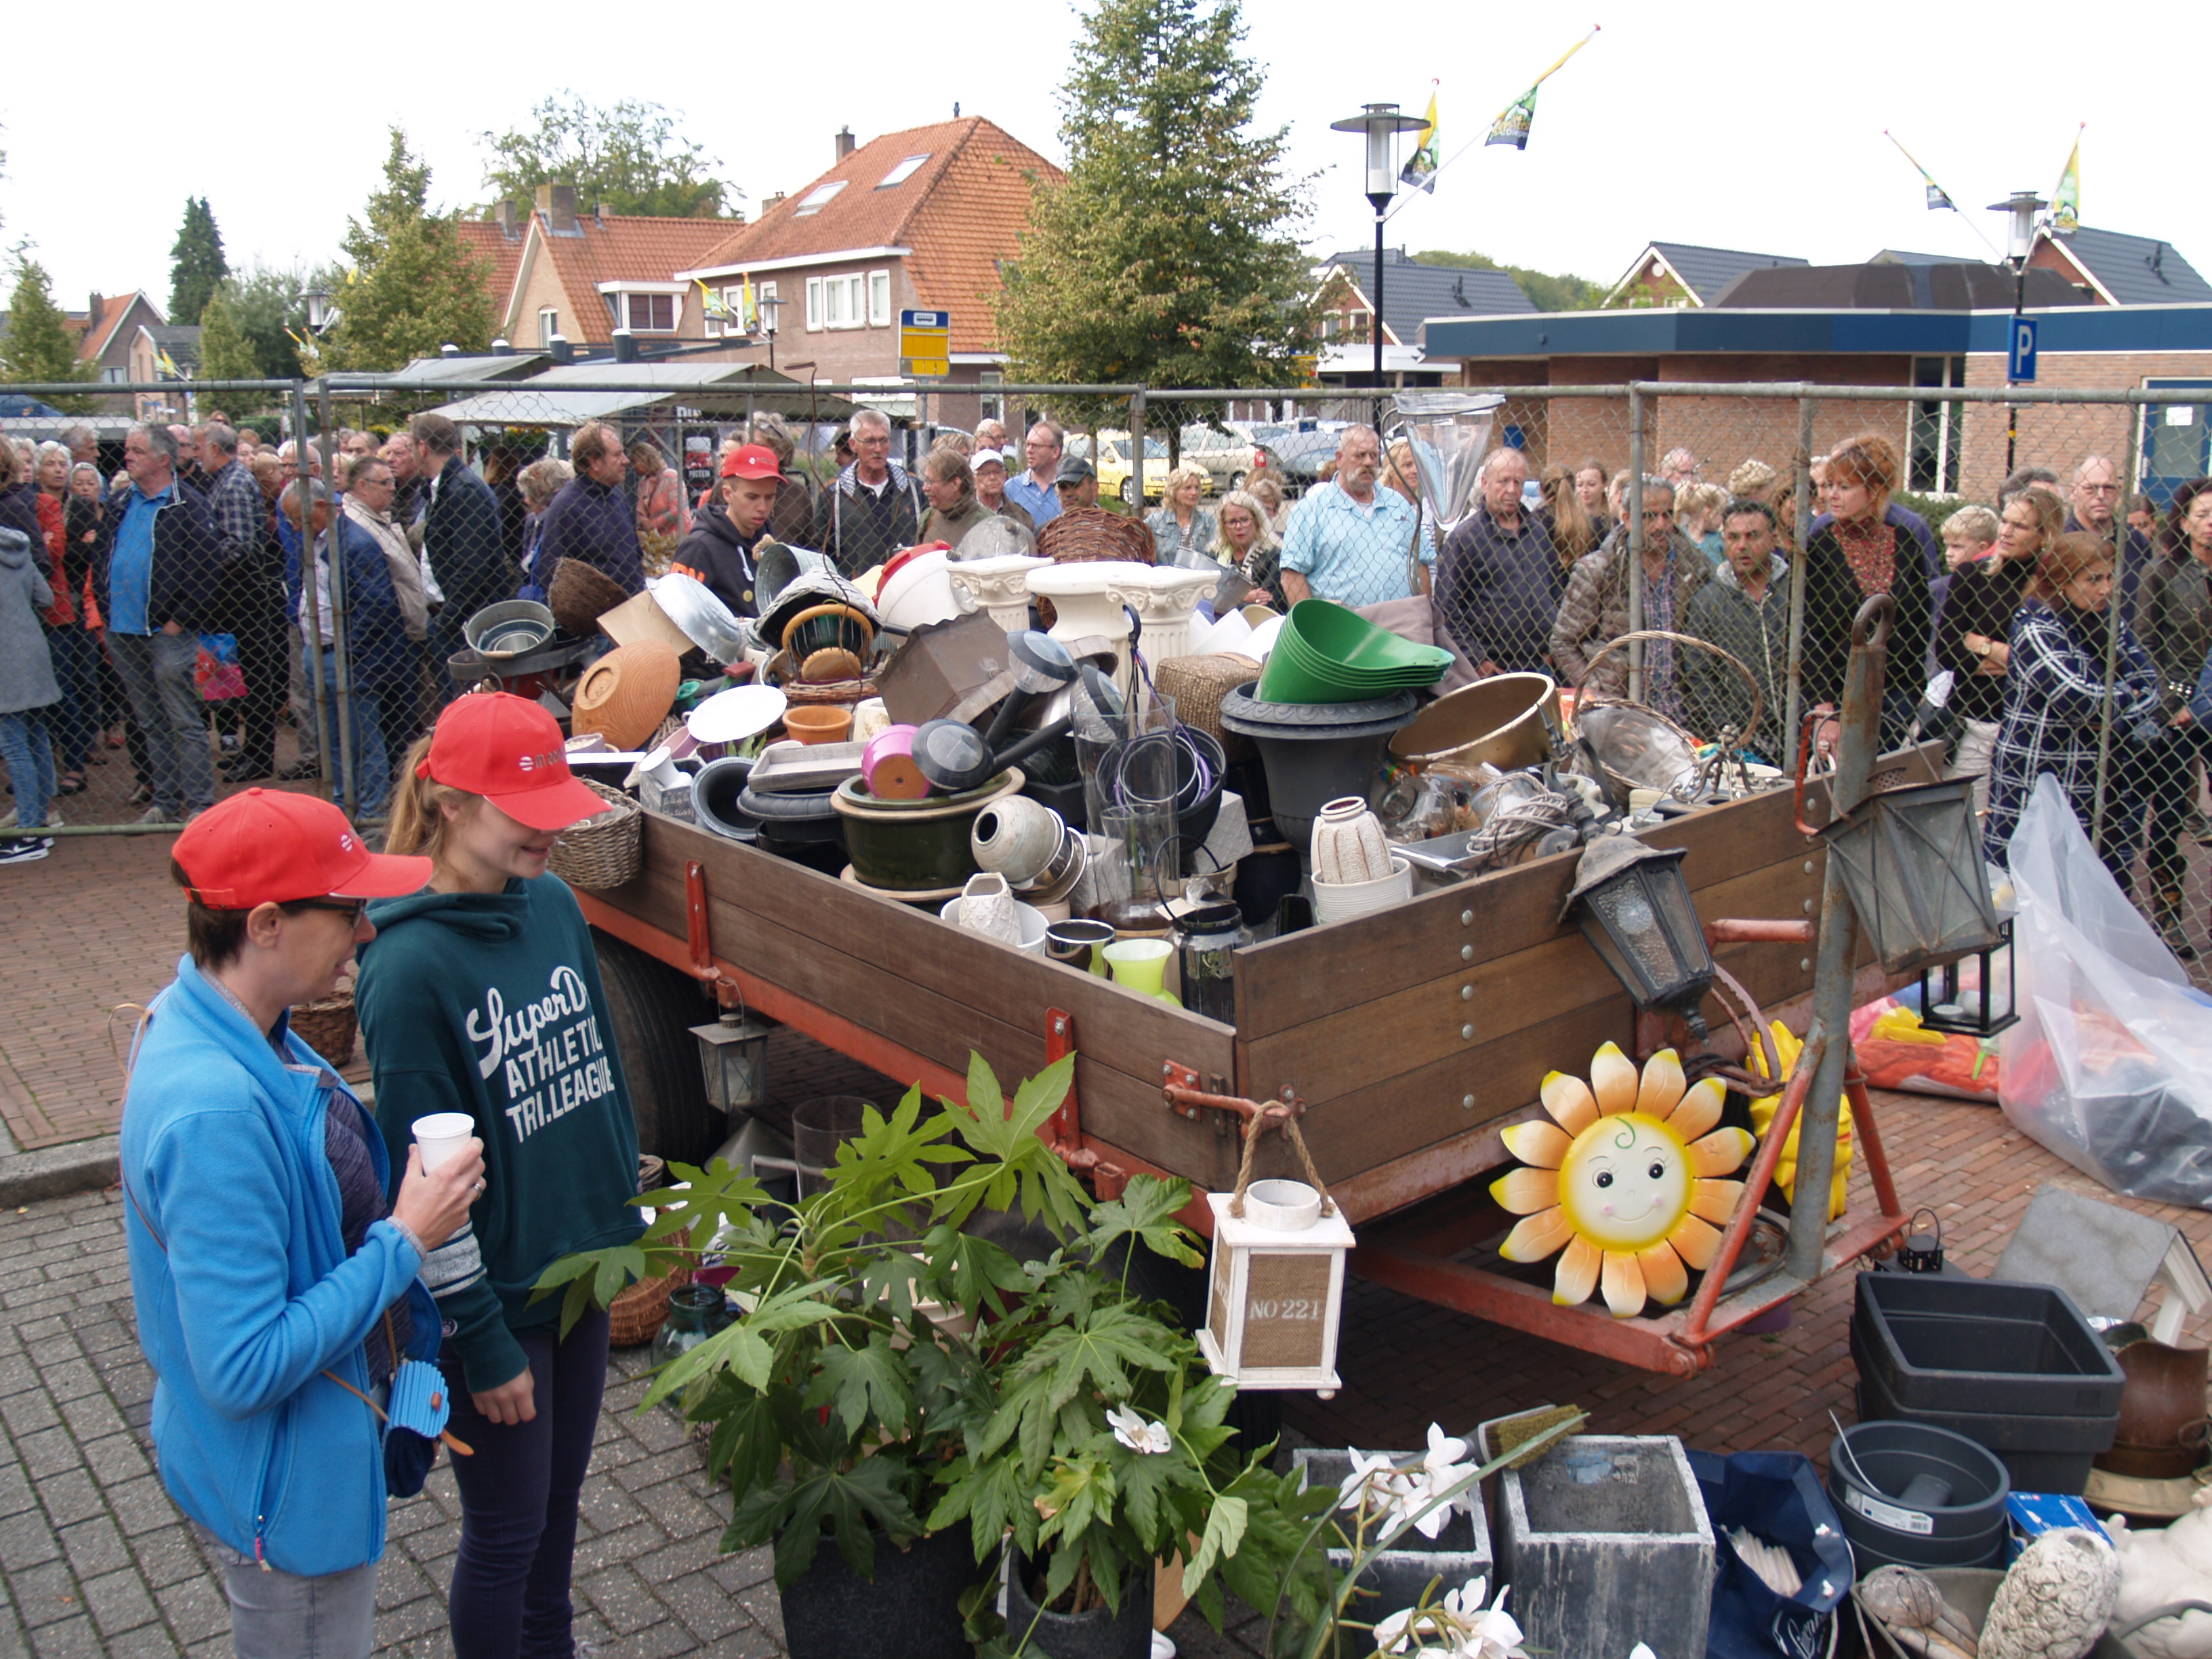 rommelmarkt deventer